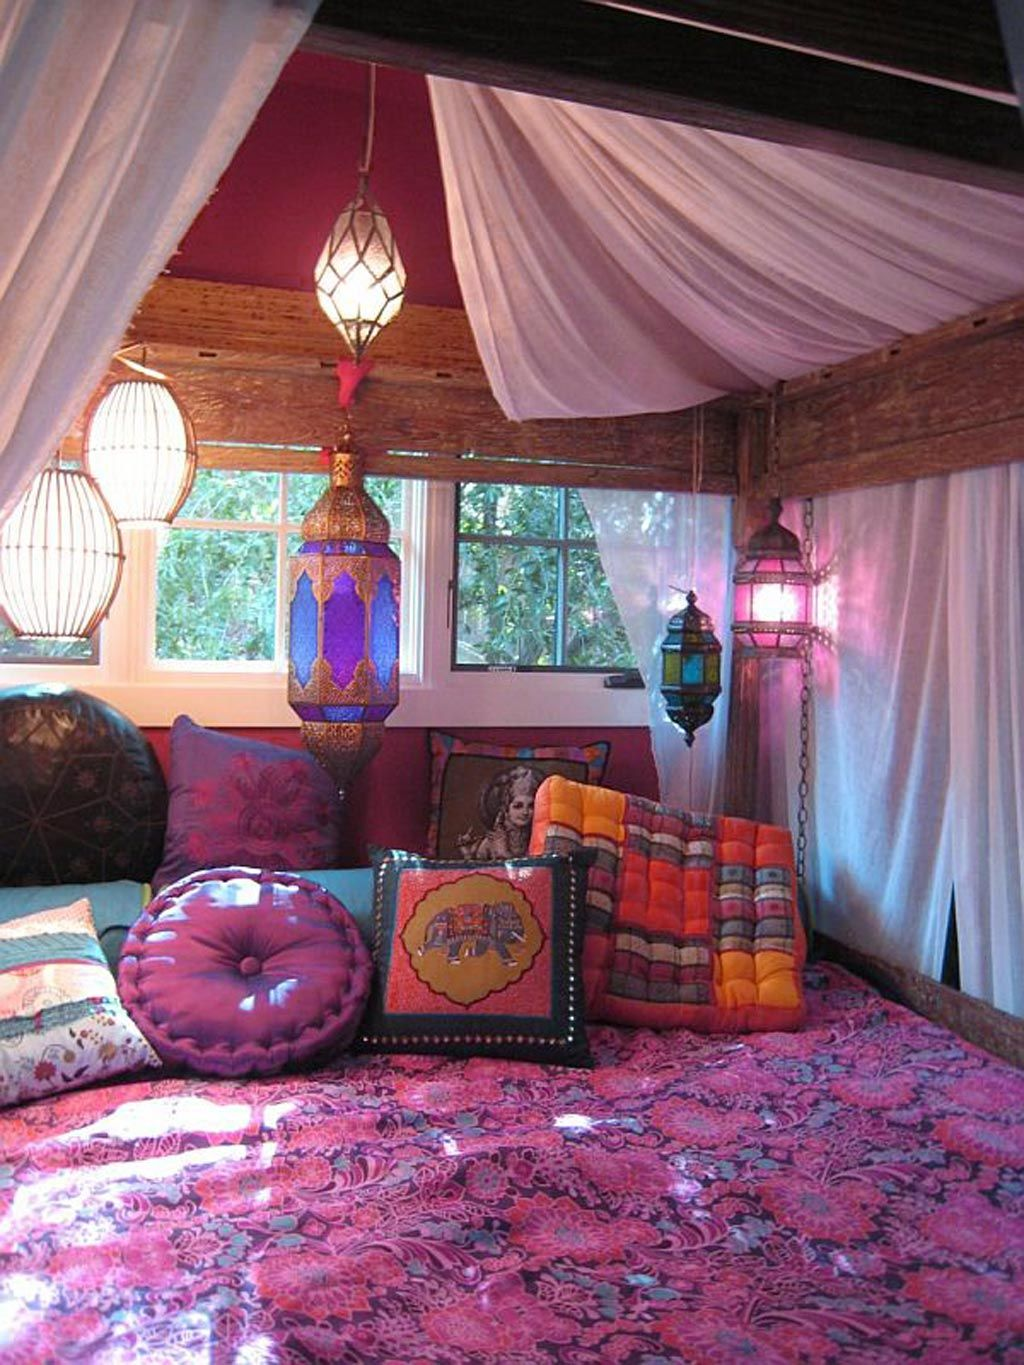 Moroccan Bedroom Decor 17 Best Images About Bali Inspired Rooms On Pinterest Villas